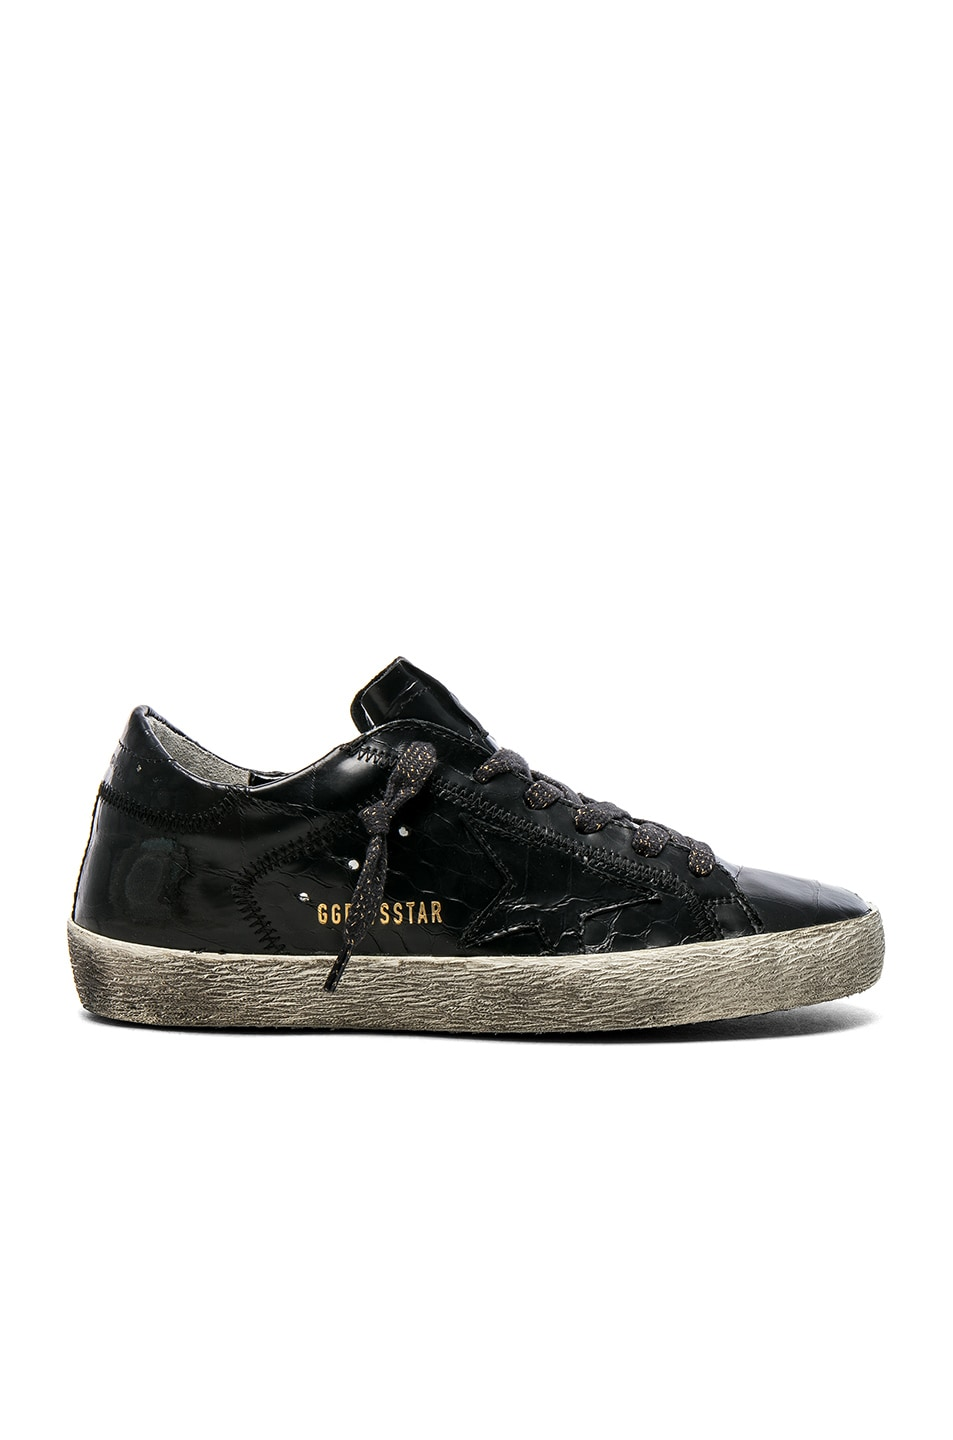 Image 1 of Golden Goose Croc Embossed Leather Superstar Sneakers in Black Cocco